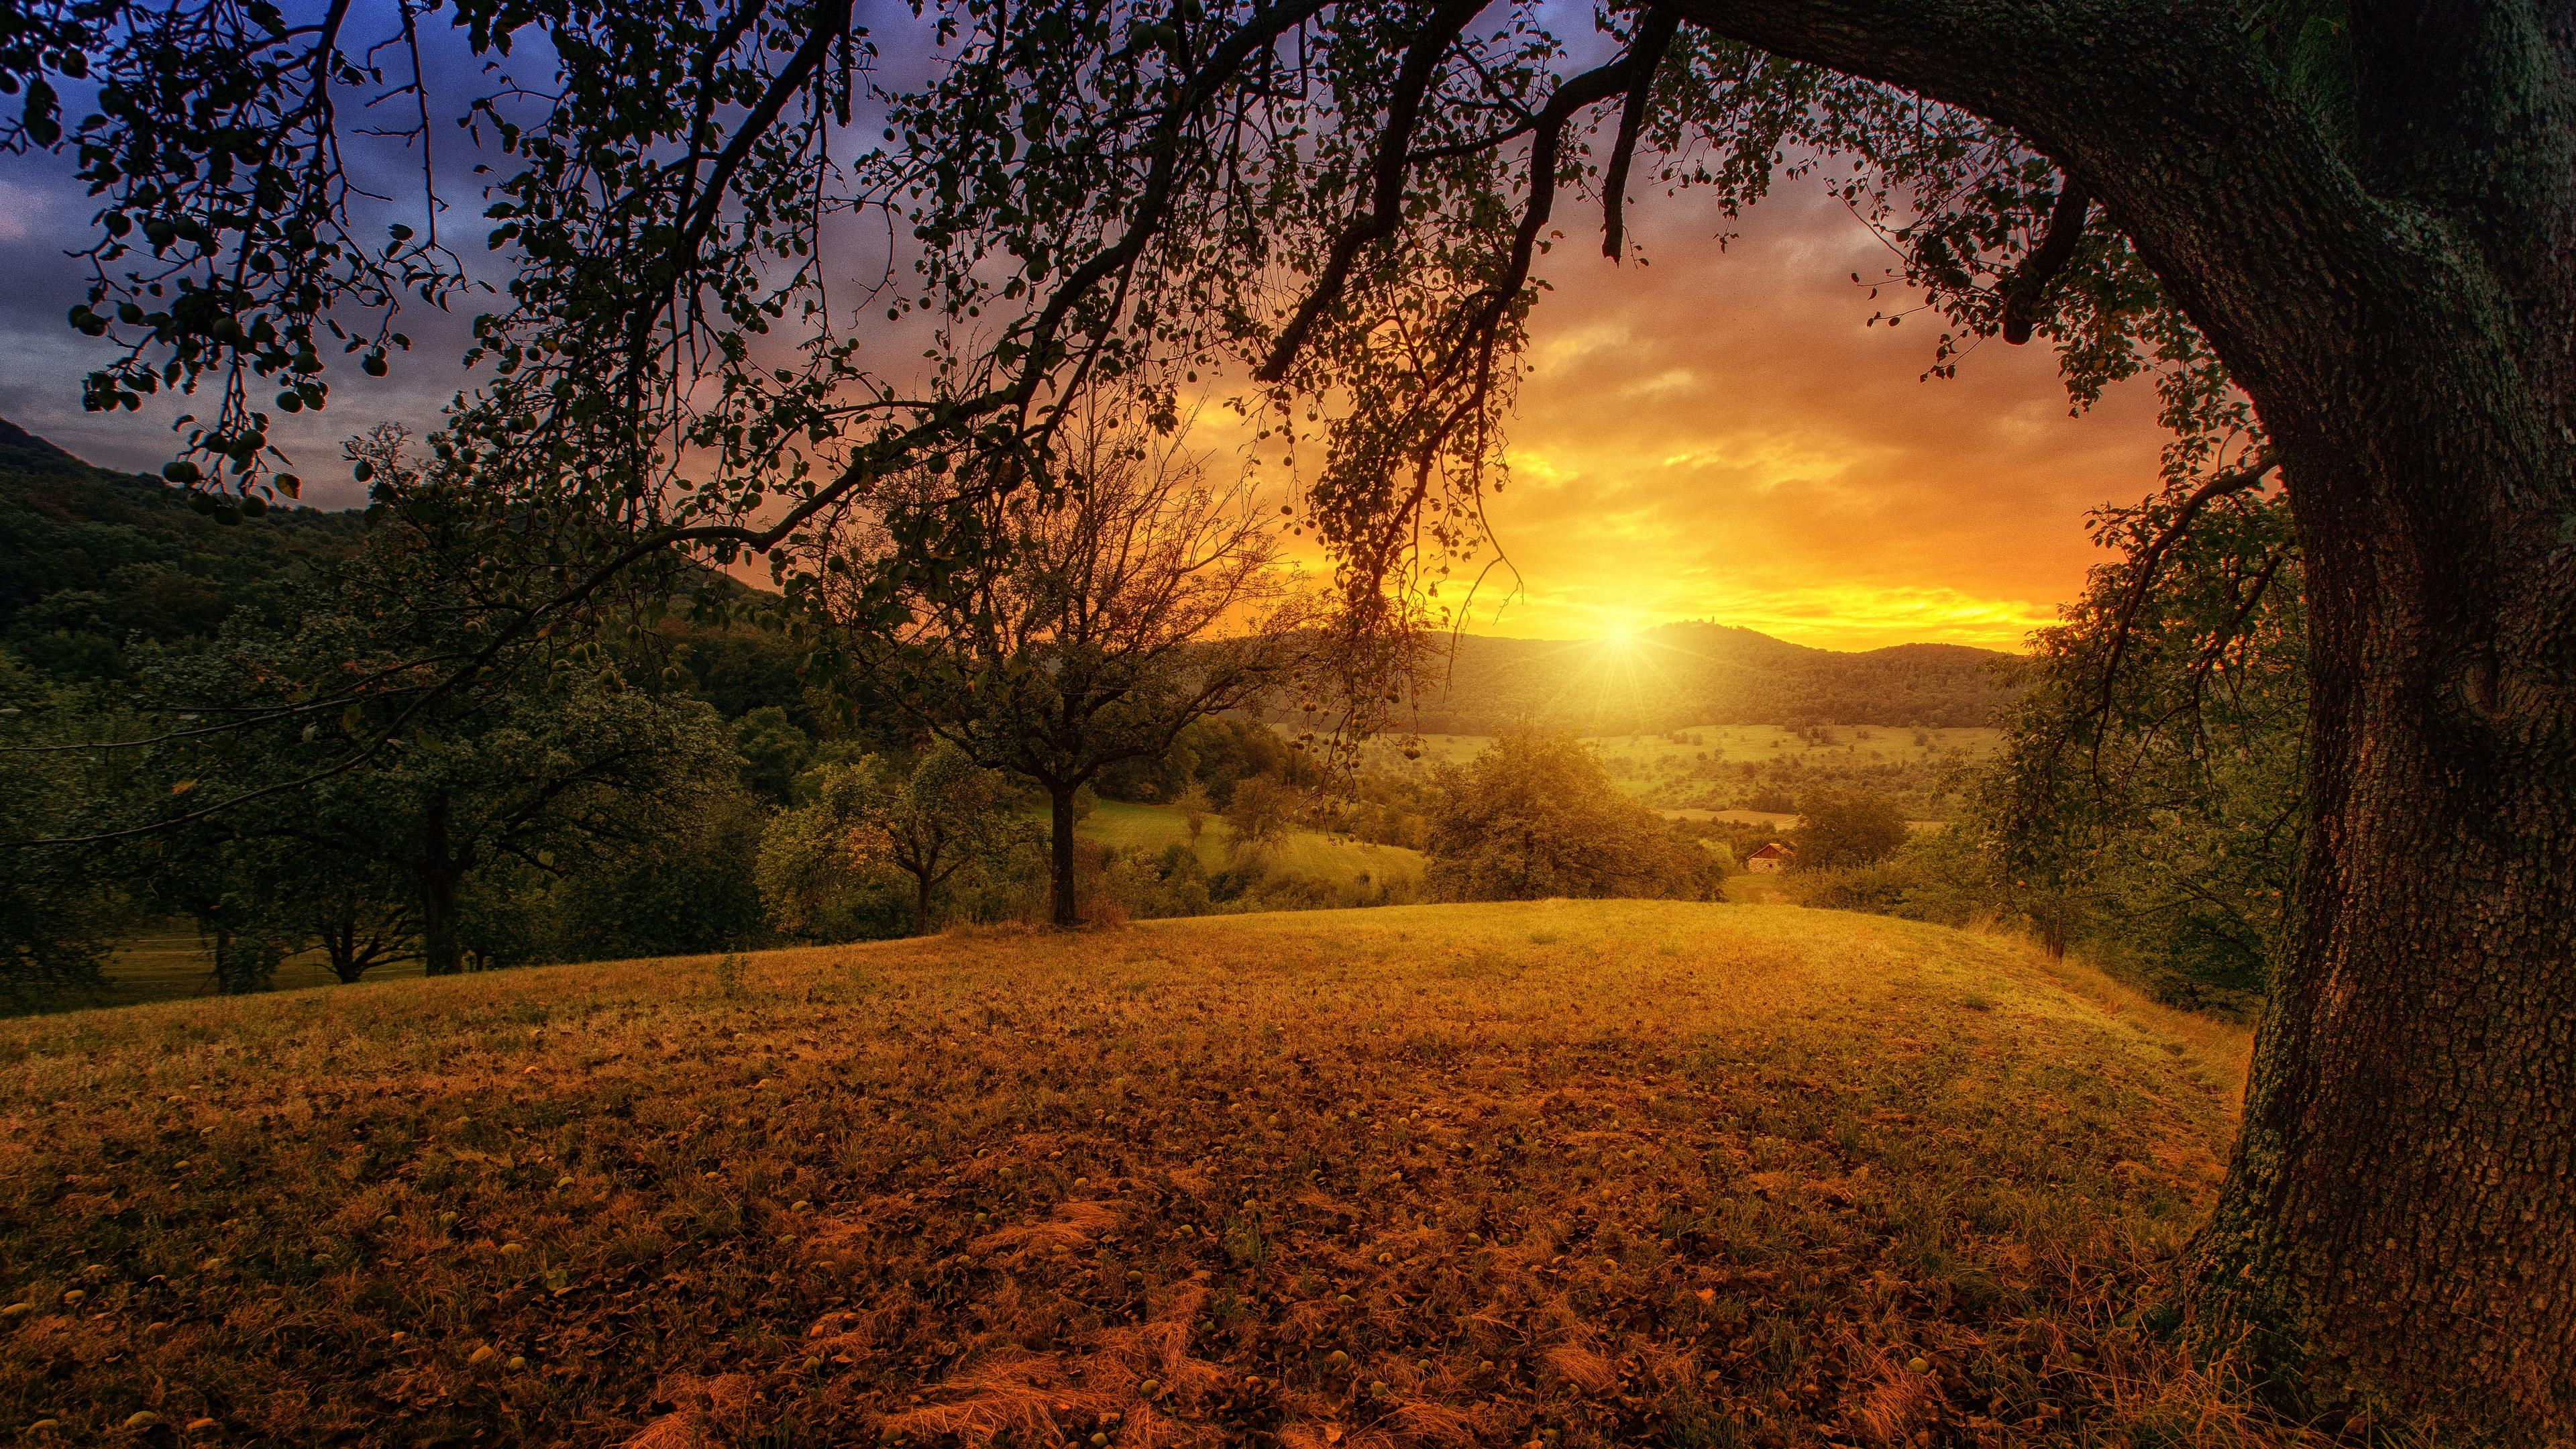 Wallpapers 4k Tree Sun Aesthetic Dawn Landscape Panorama 4k